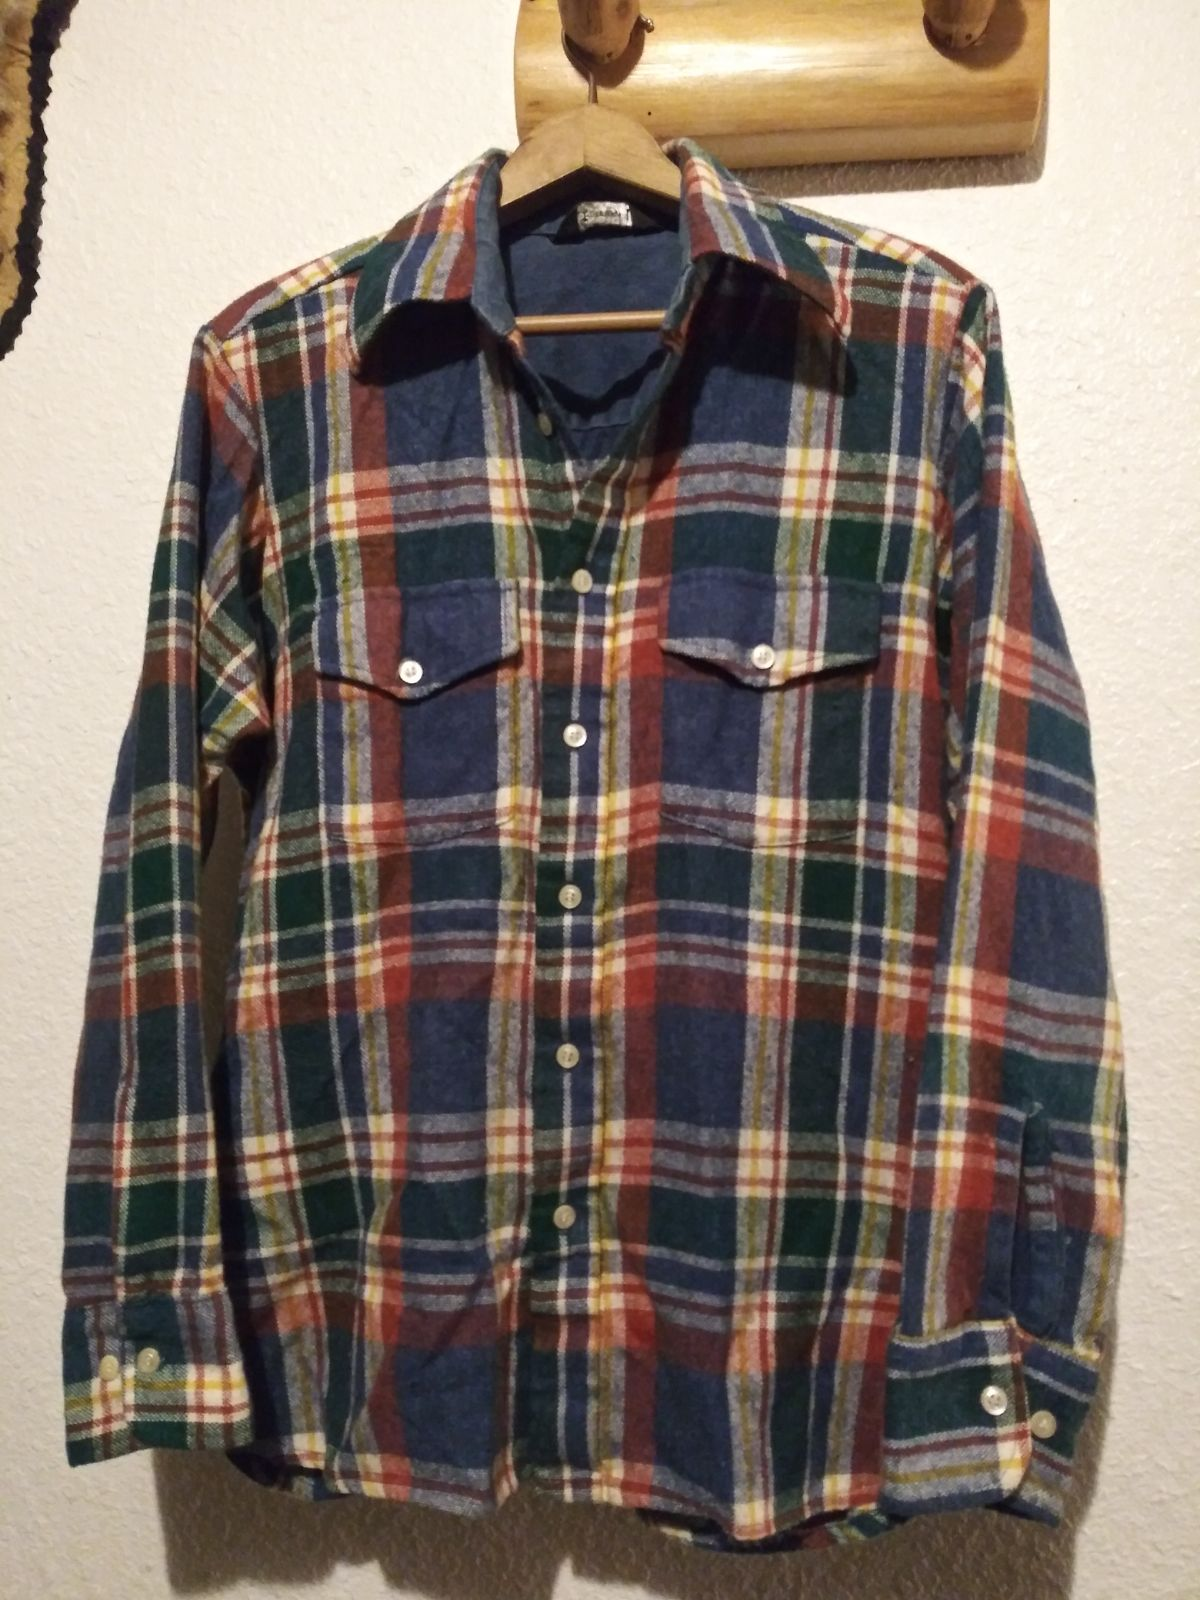 Vintage JCPenney Wool Blend Plaid Shirt